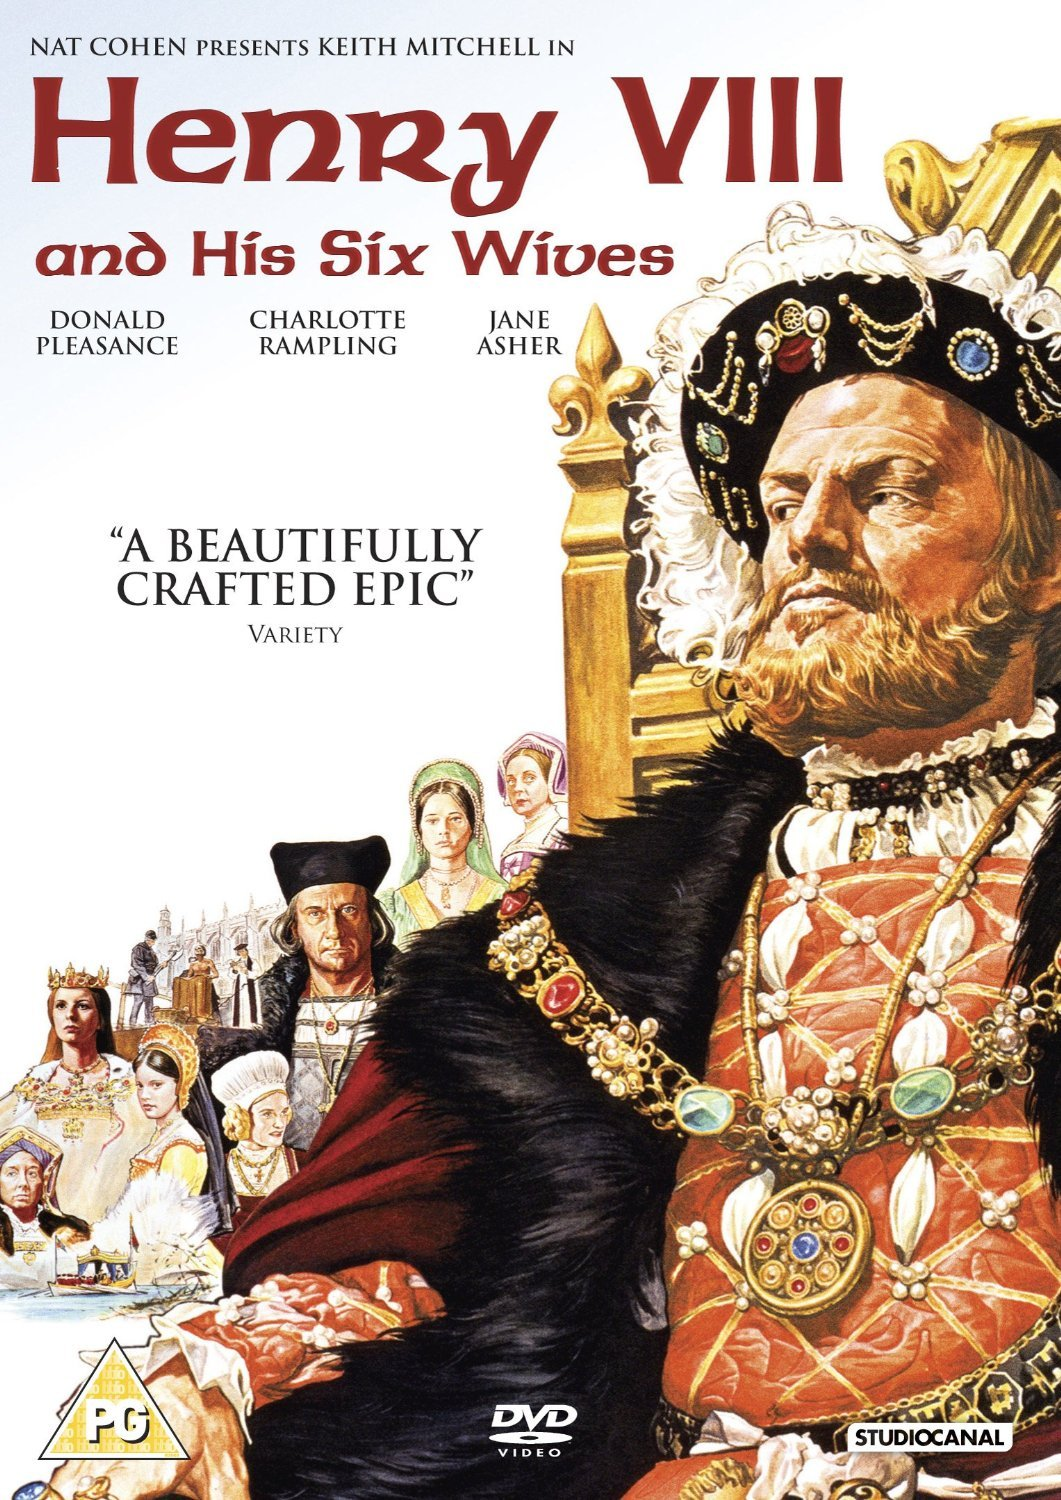 amazon com henry viii and his six wives henry 8th and his 6 amazon com henry viii and his six wives henry 8th and his 6 wives non usa format pal reg 2 import united kingdom keith michell donald